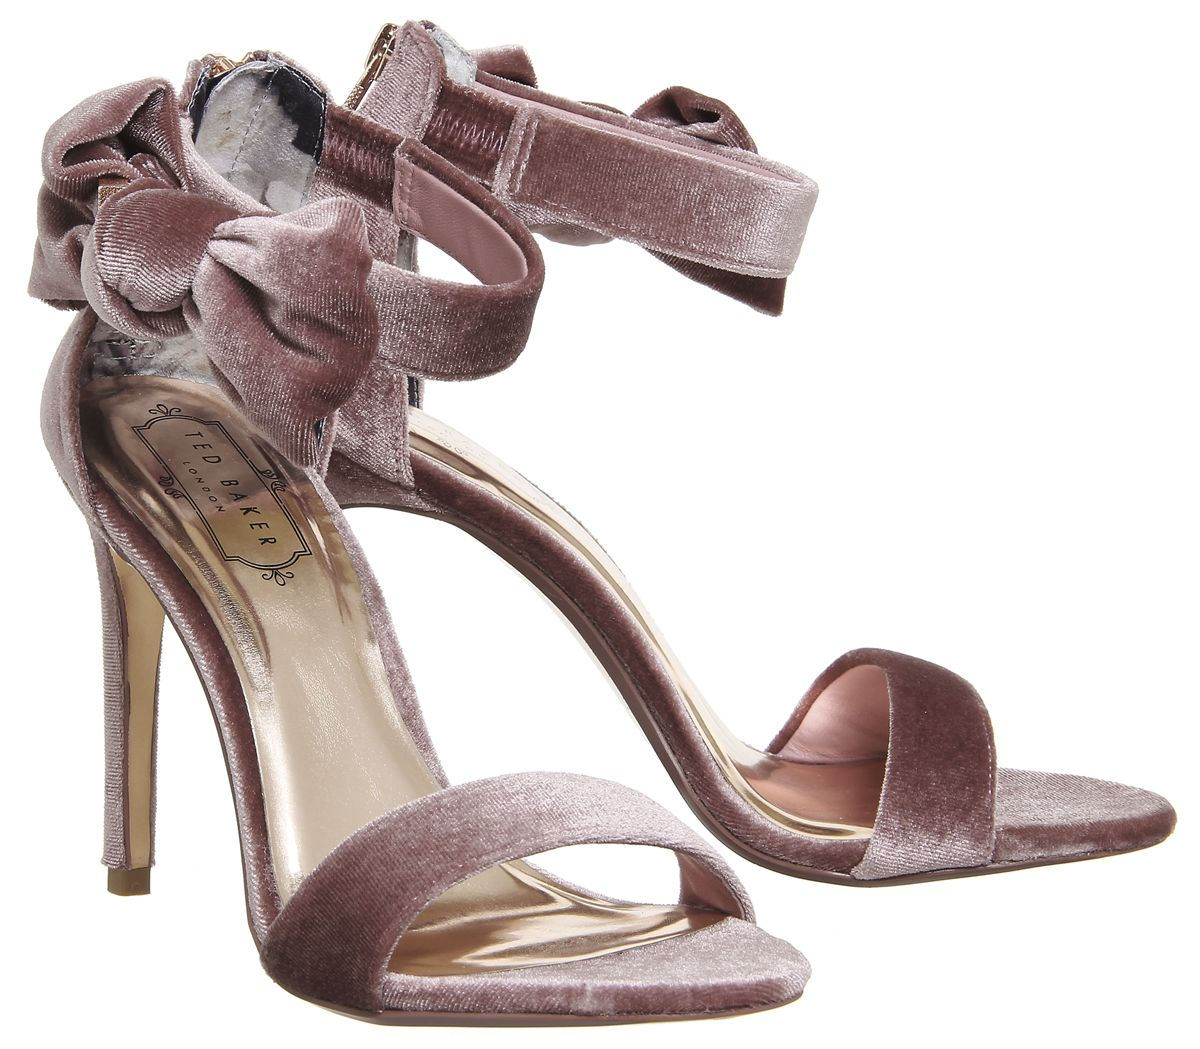 55f2f405d1 Torabel Bow Heels. Double tap to zoom into the image. Ted Baker ...